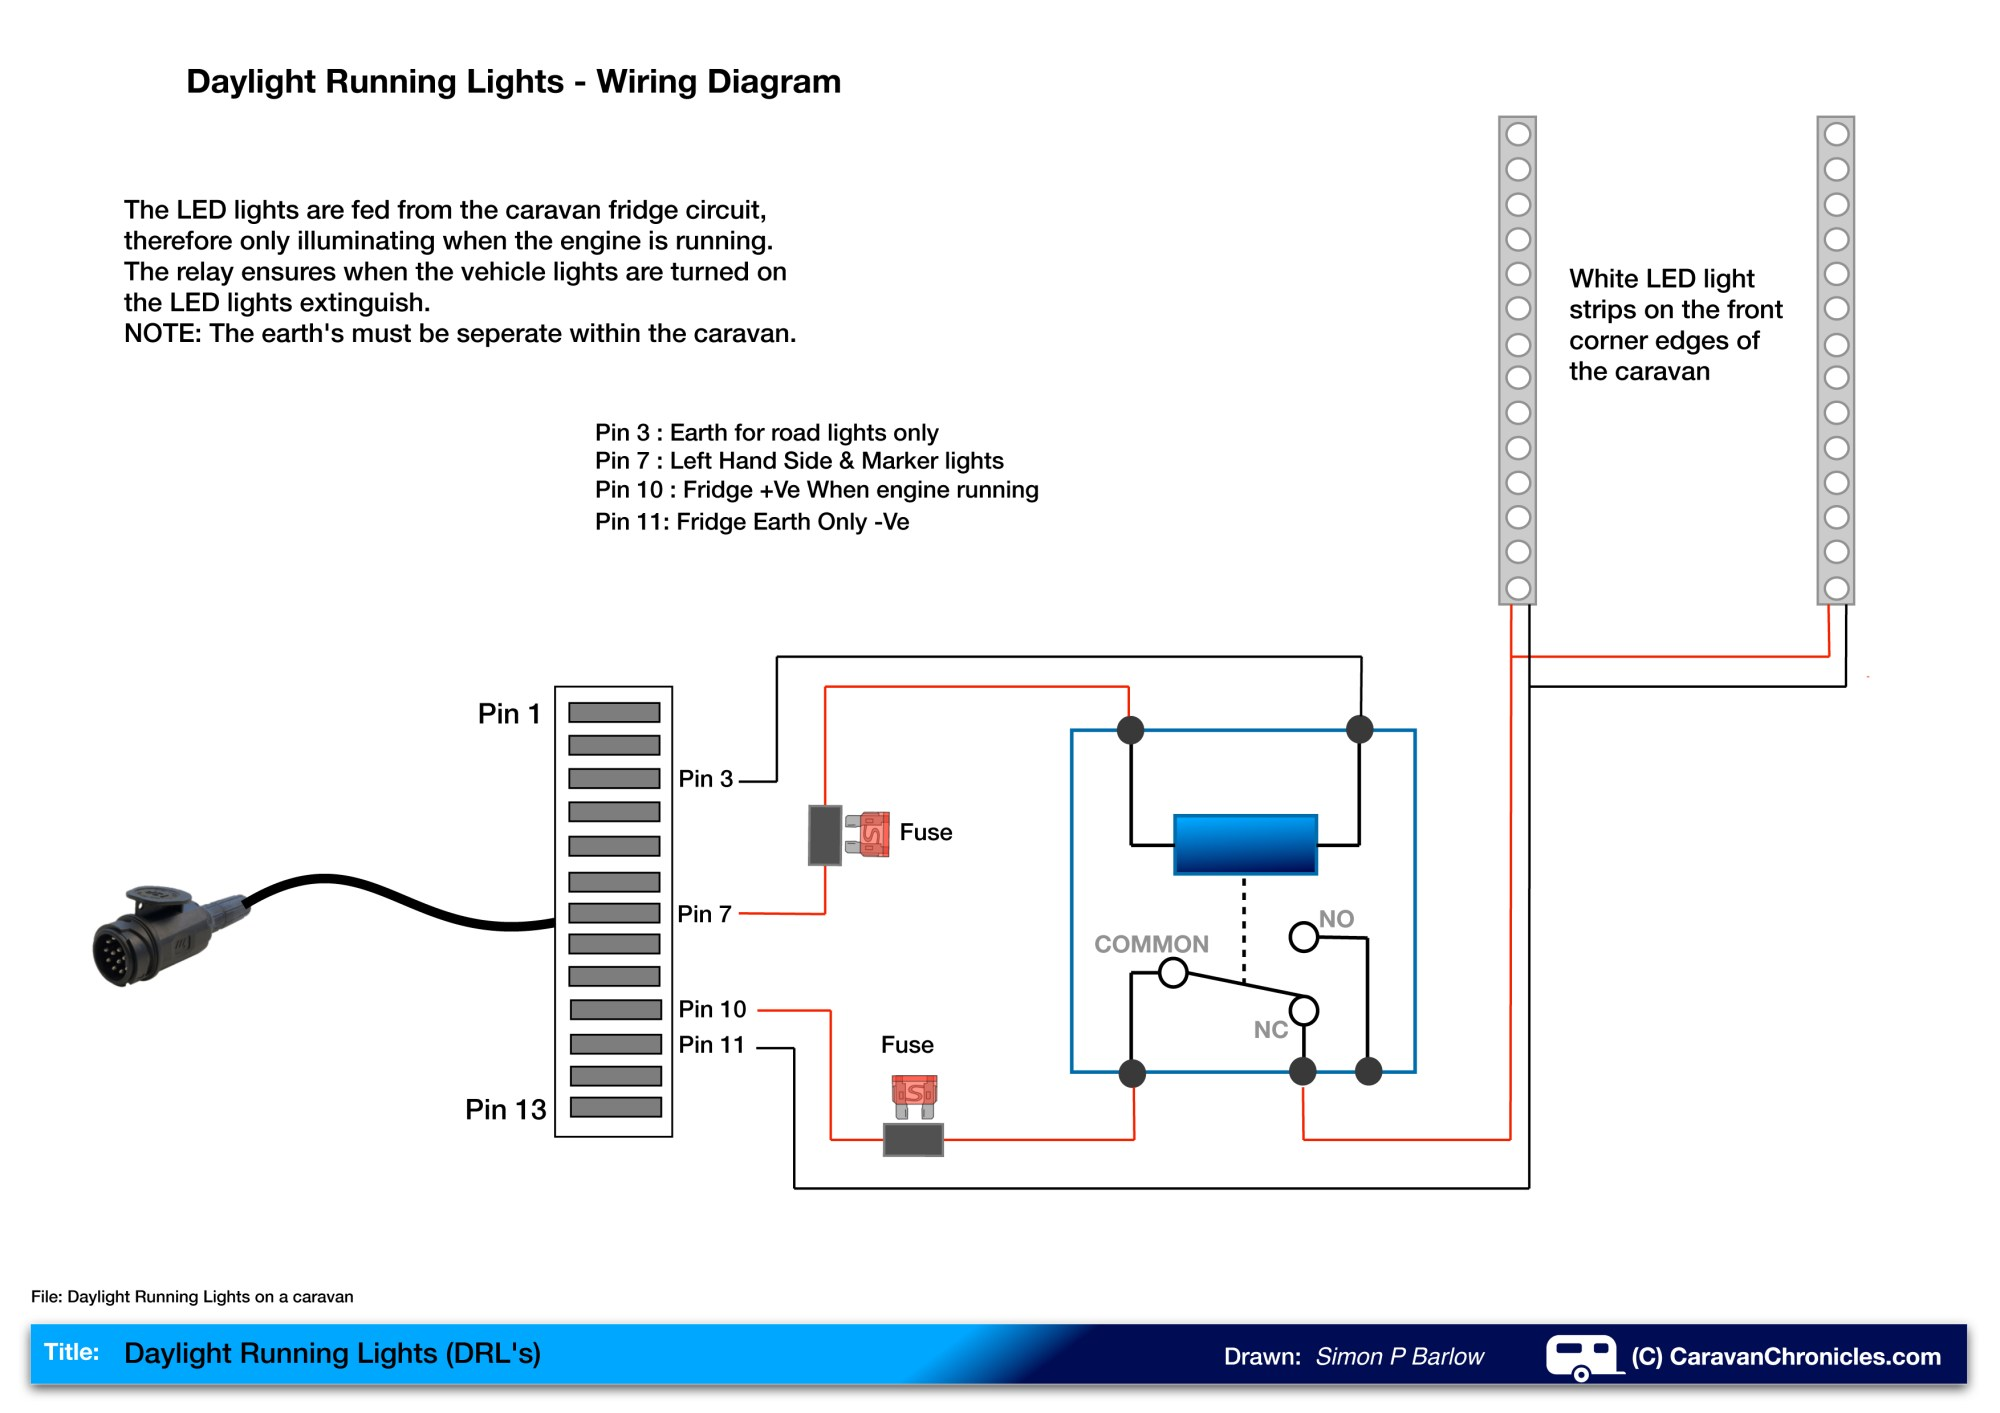 hight resolution of wiring daylight running lights drl s on a caravan caravan chronicles daylight harvesting wiring diagram